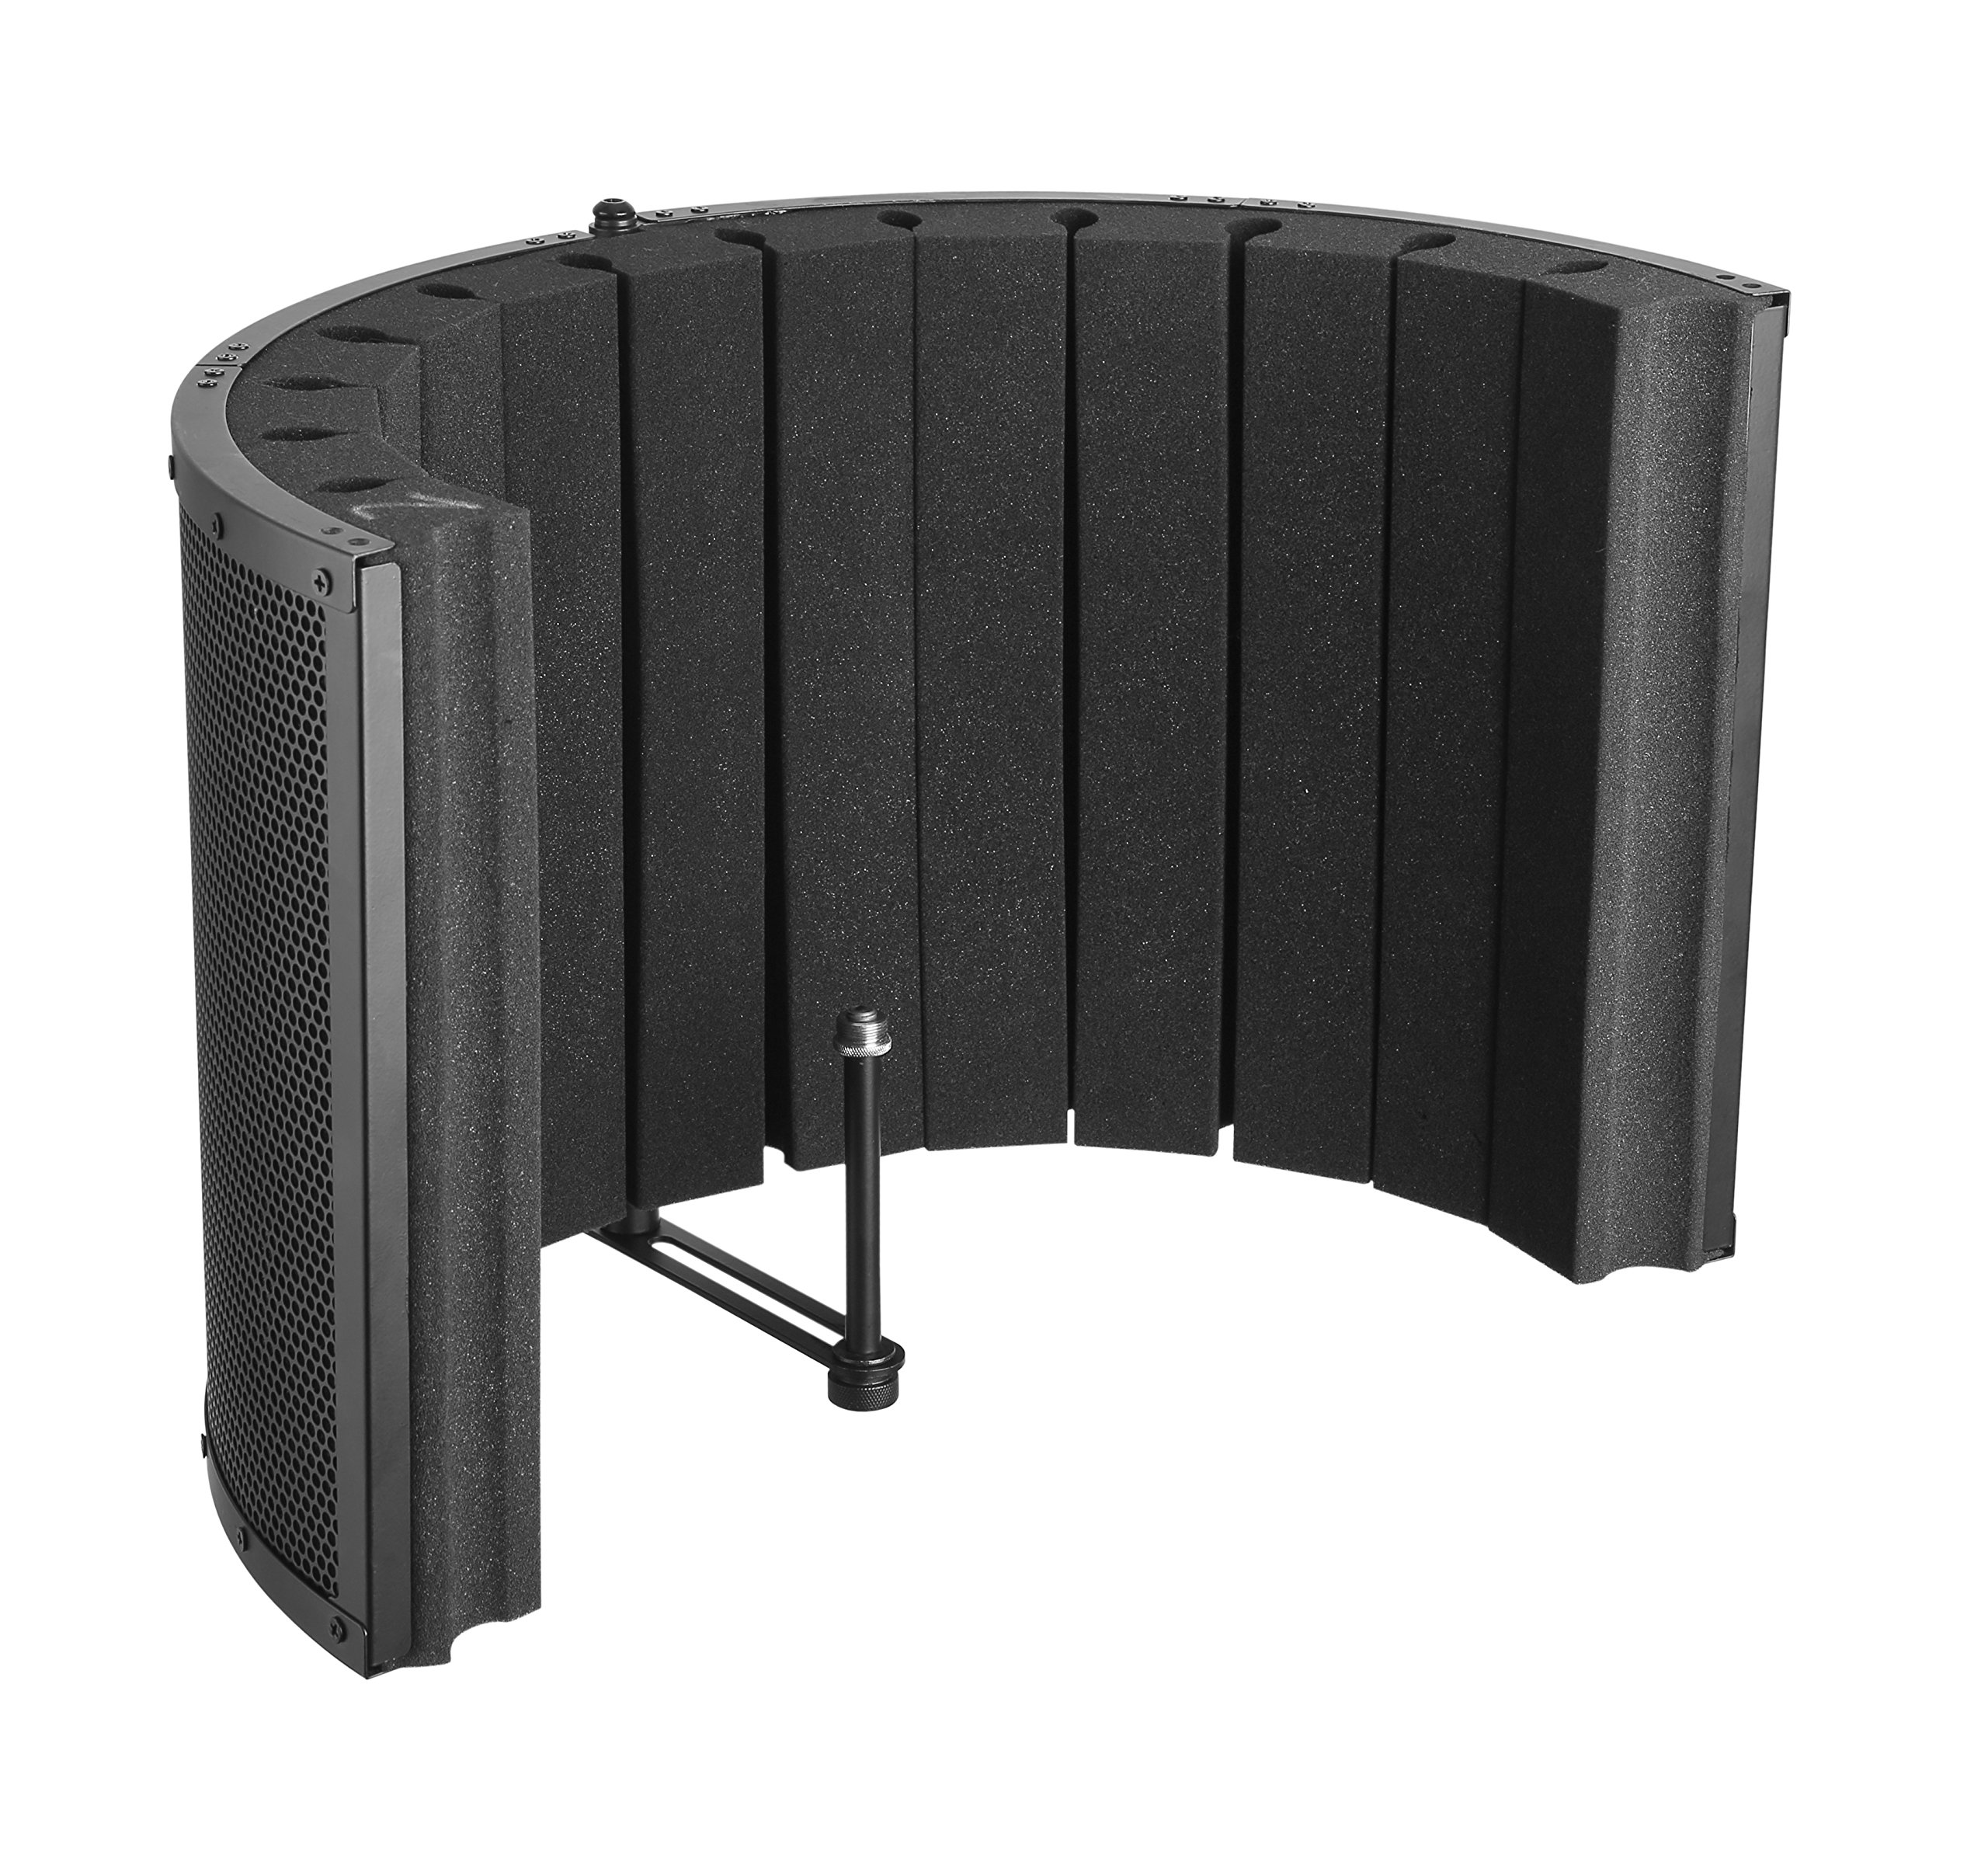 Bison Prosound Portable Sound Absorbing Vocal Booth Recording Panel - Stand Mount by Bison Prosound